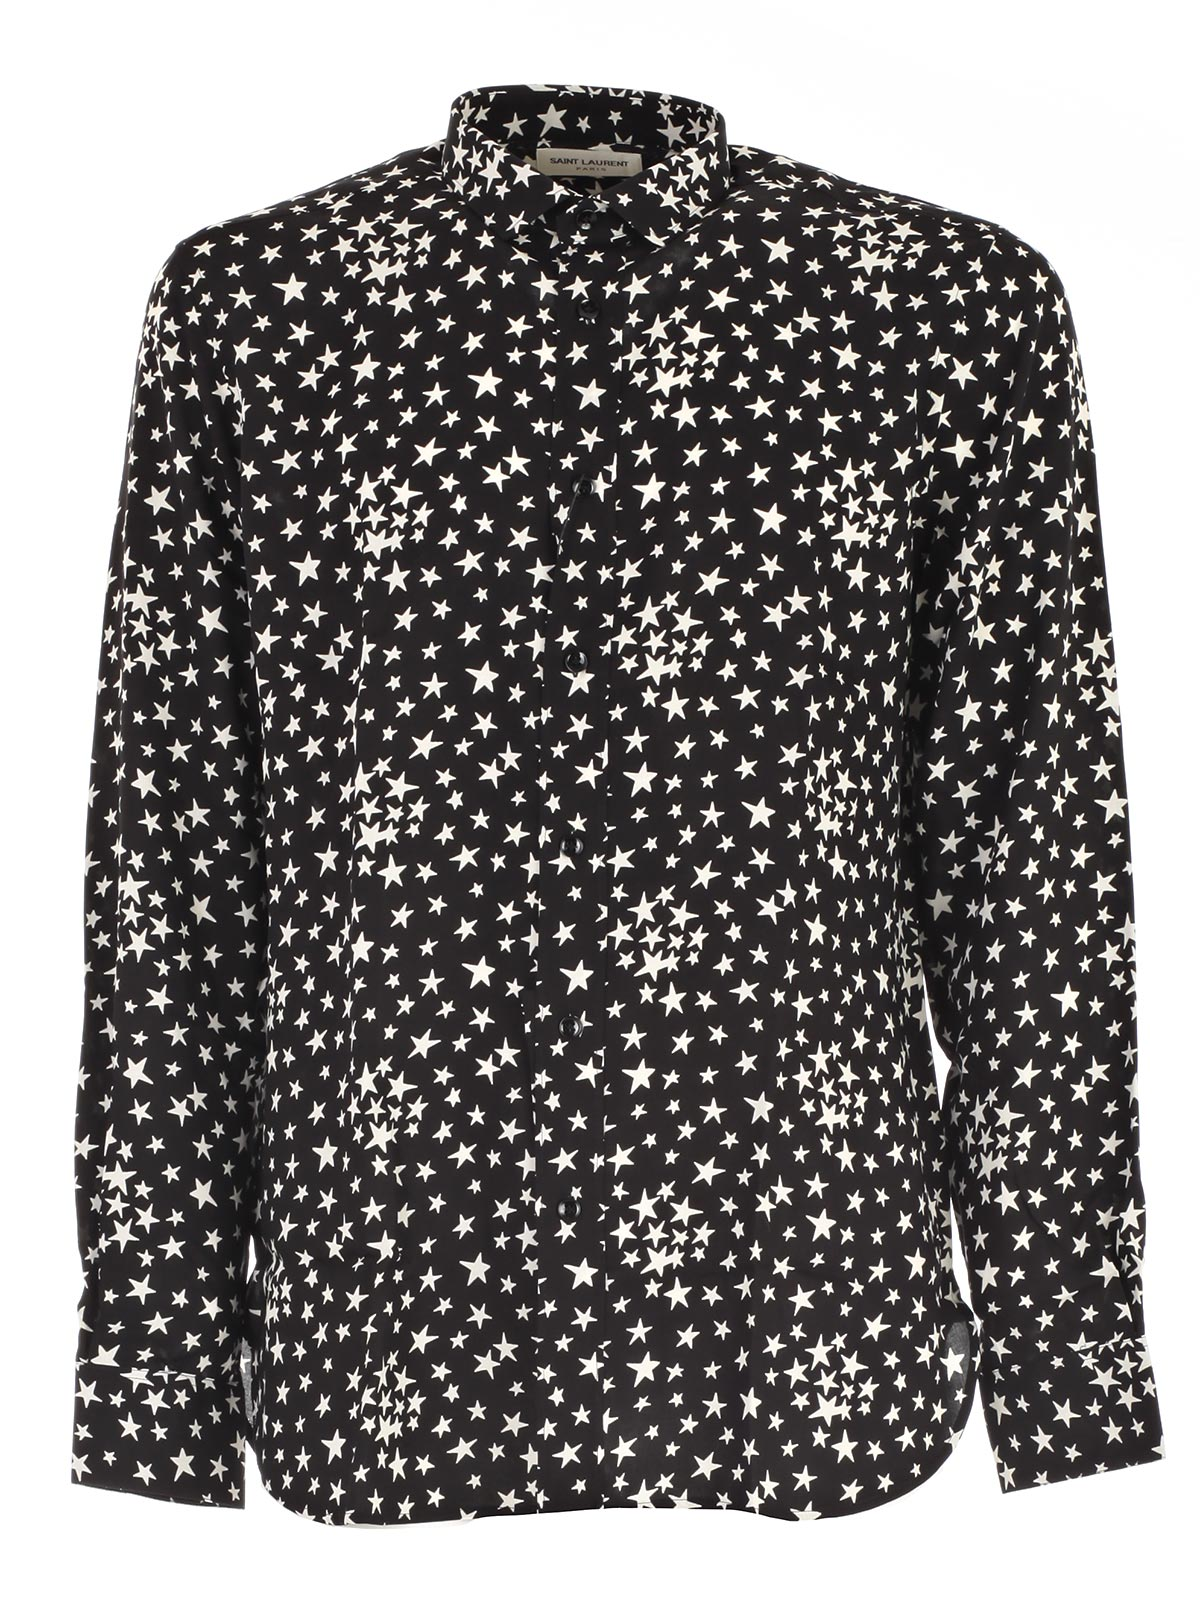 Picture of SAINT LAURENT SHIRT CAMICIA STELLE BIANCHE